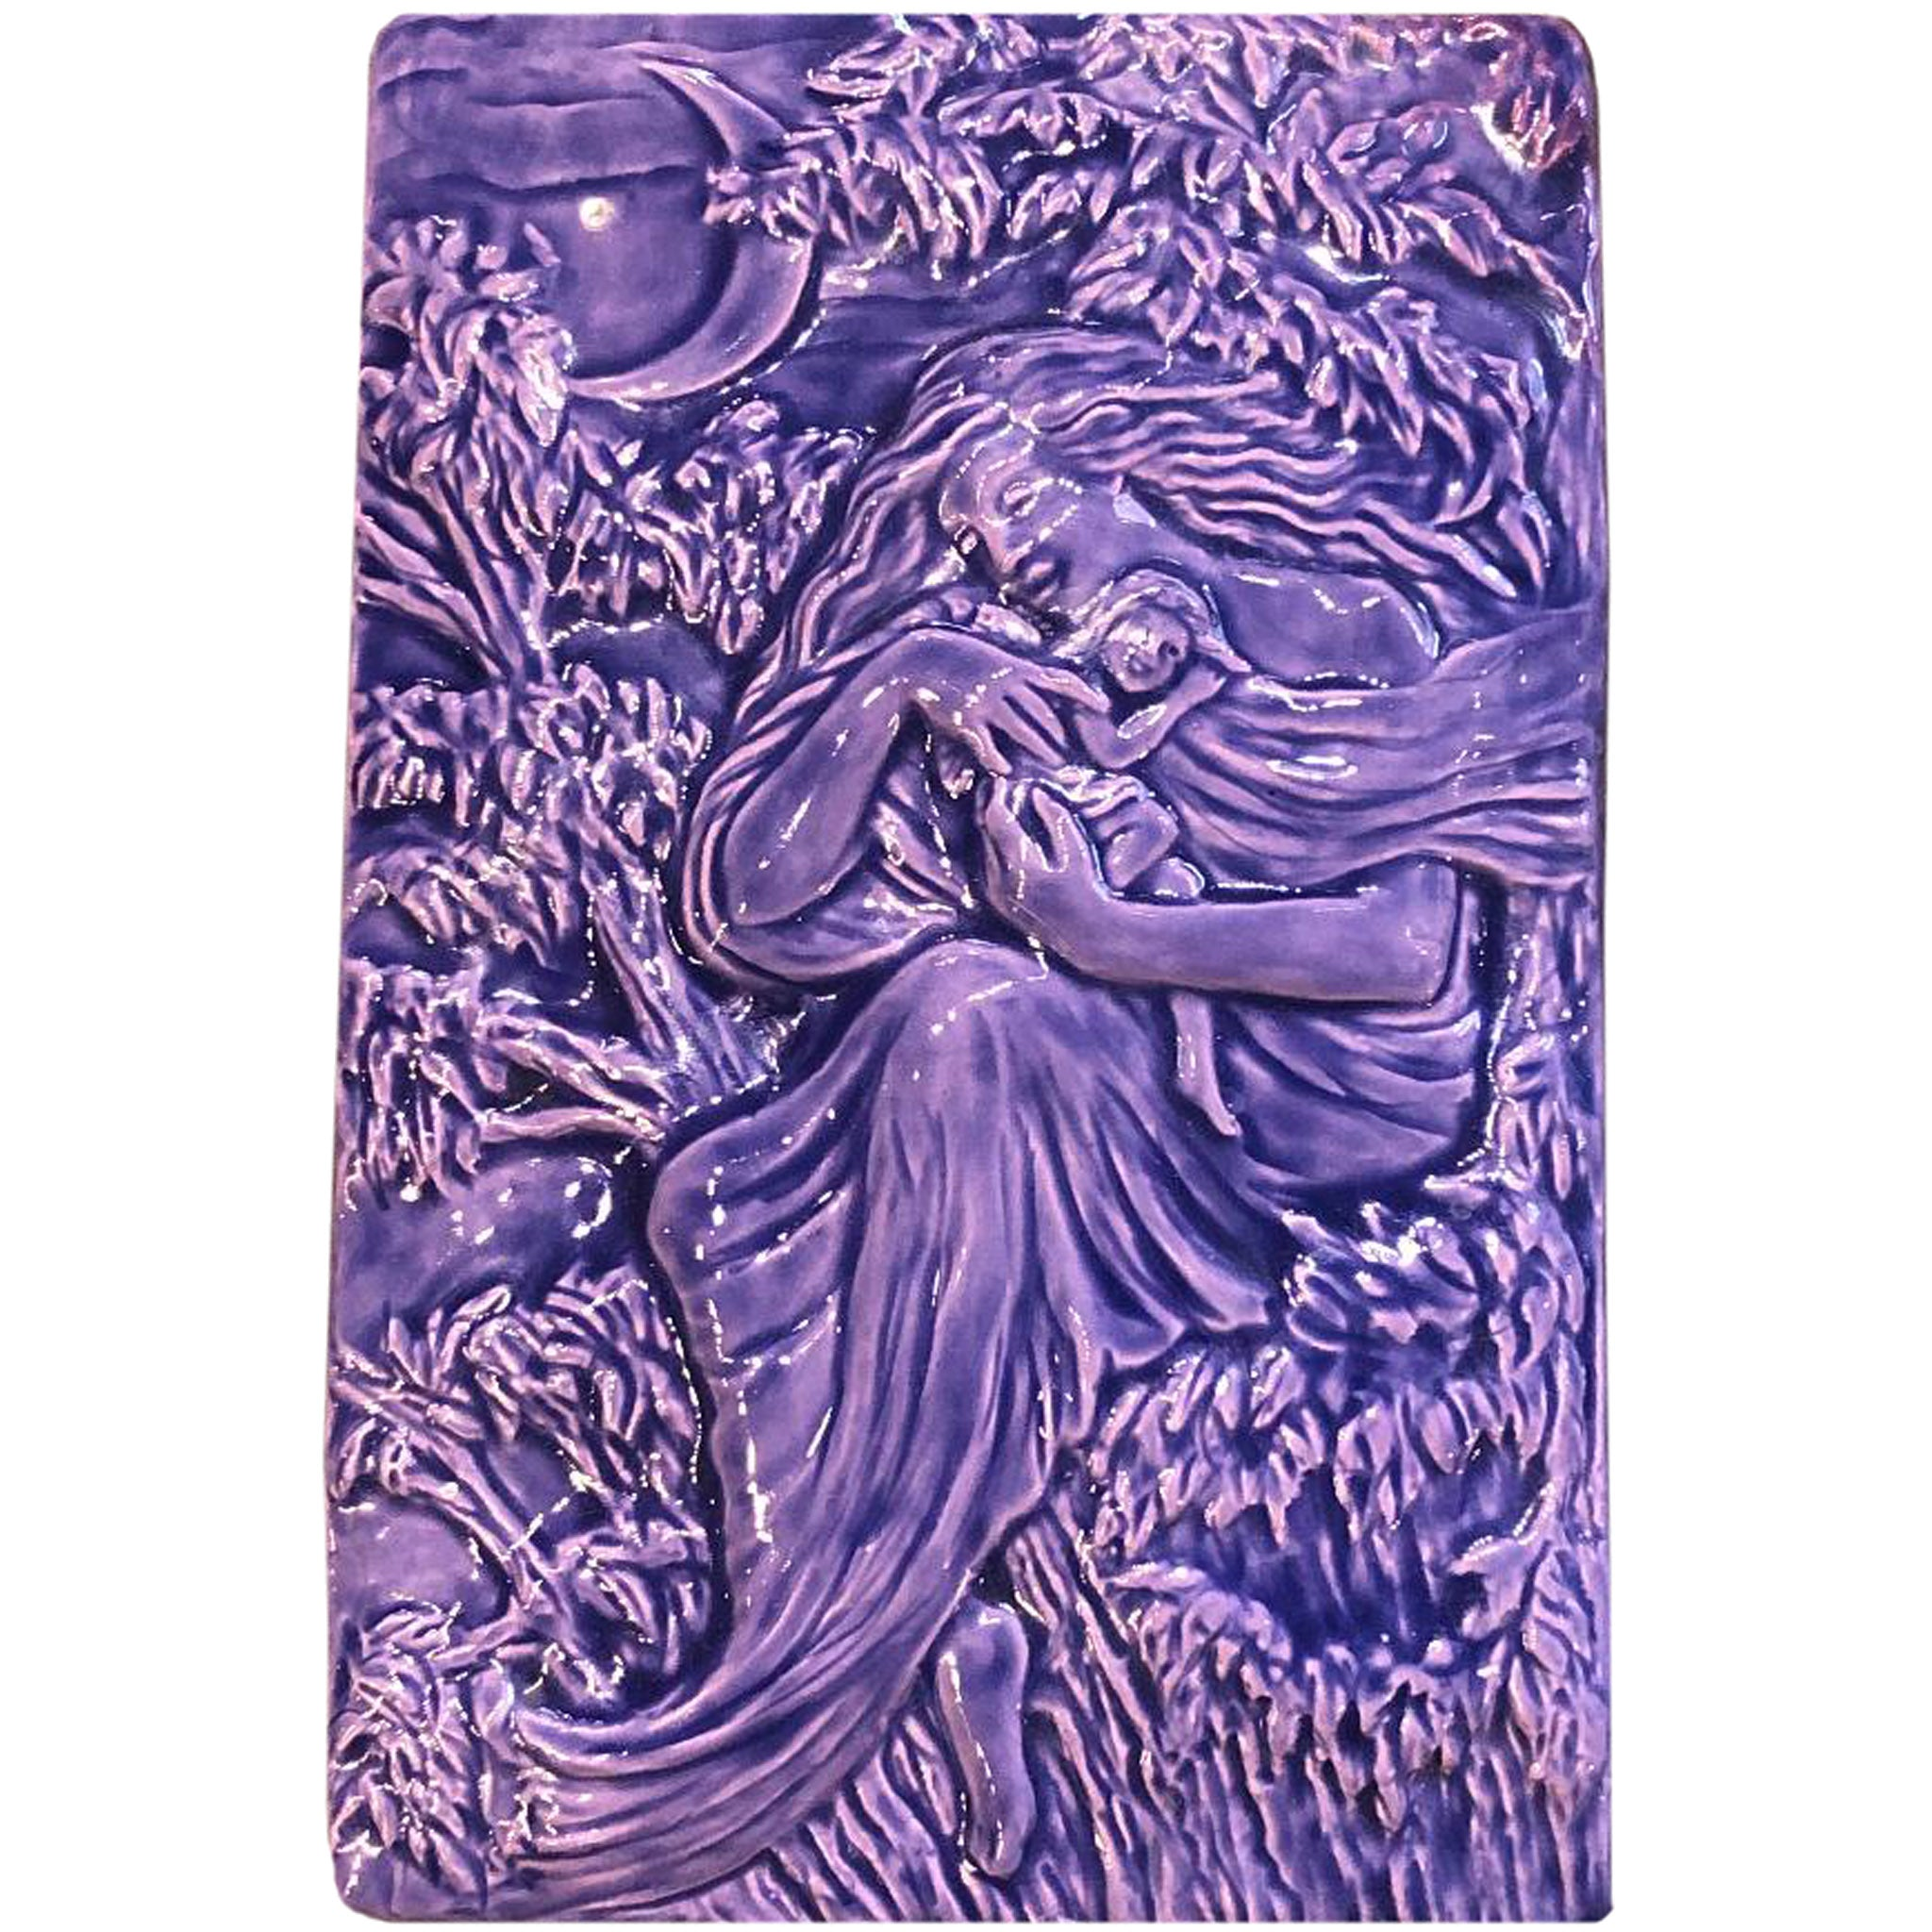 Mother Earth Mermania Tile